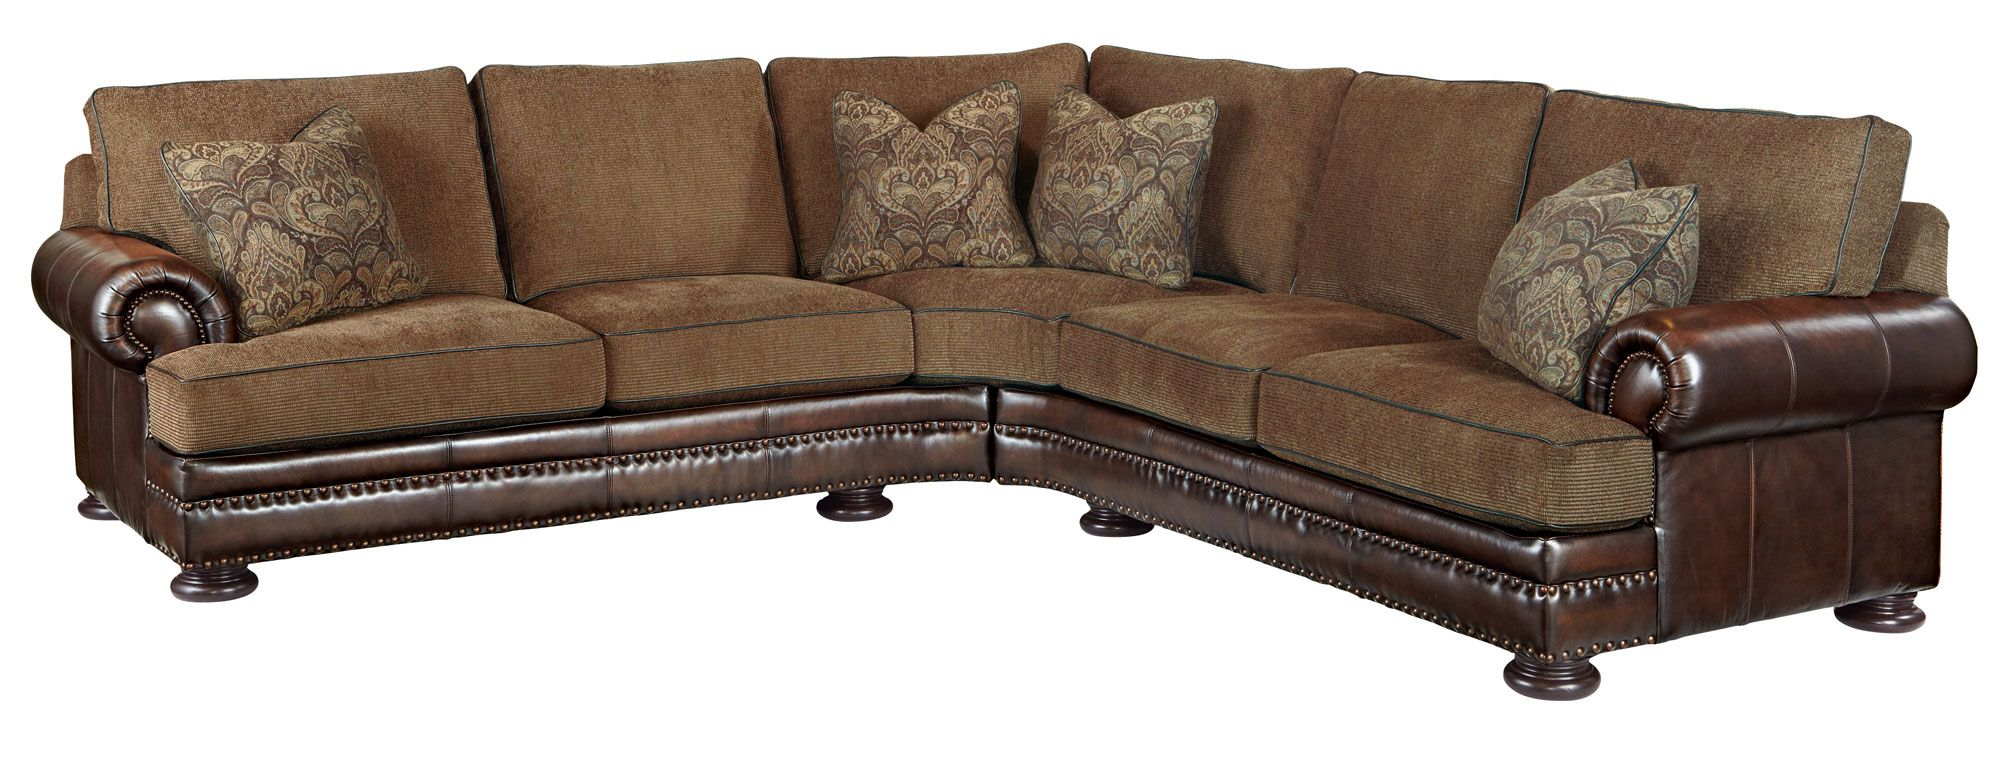 Bernhardt | Foster Fabric/Leather Sectional Group (5192LCO, 5191LCO)